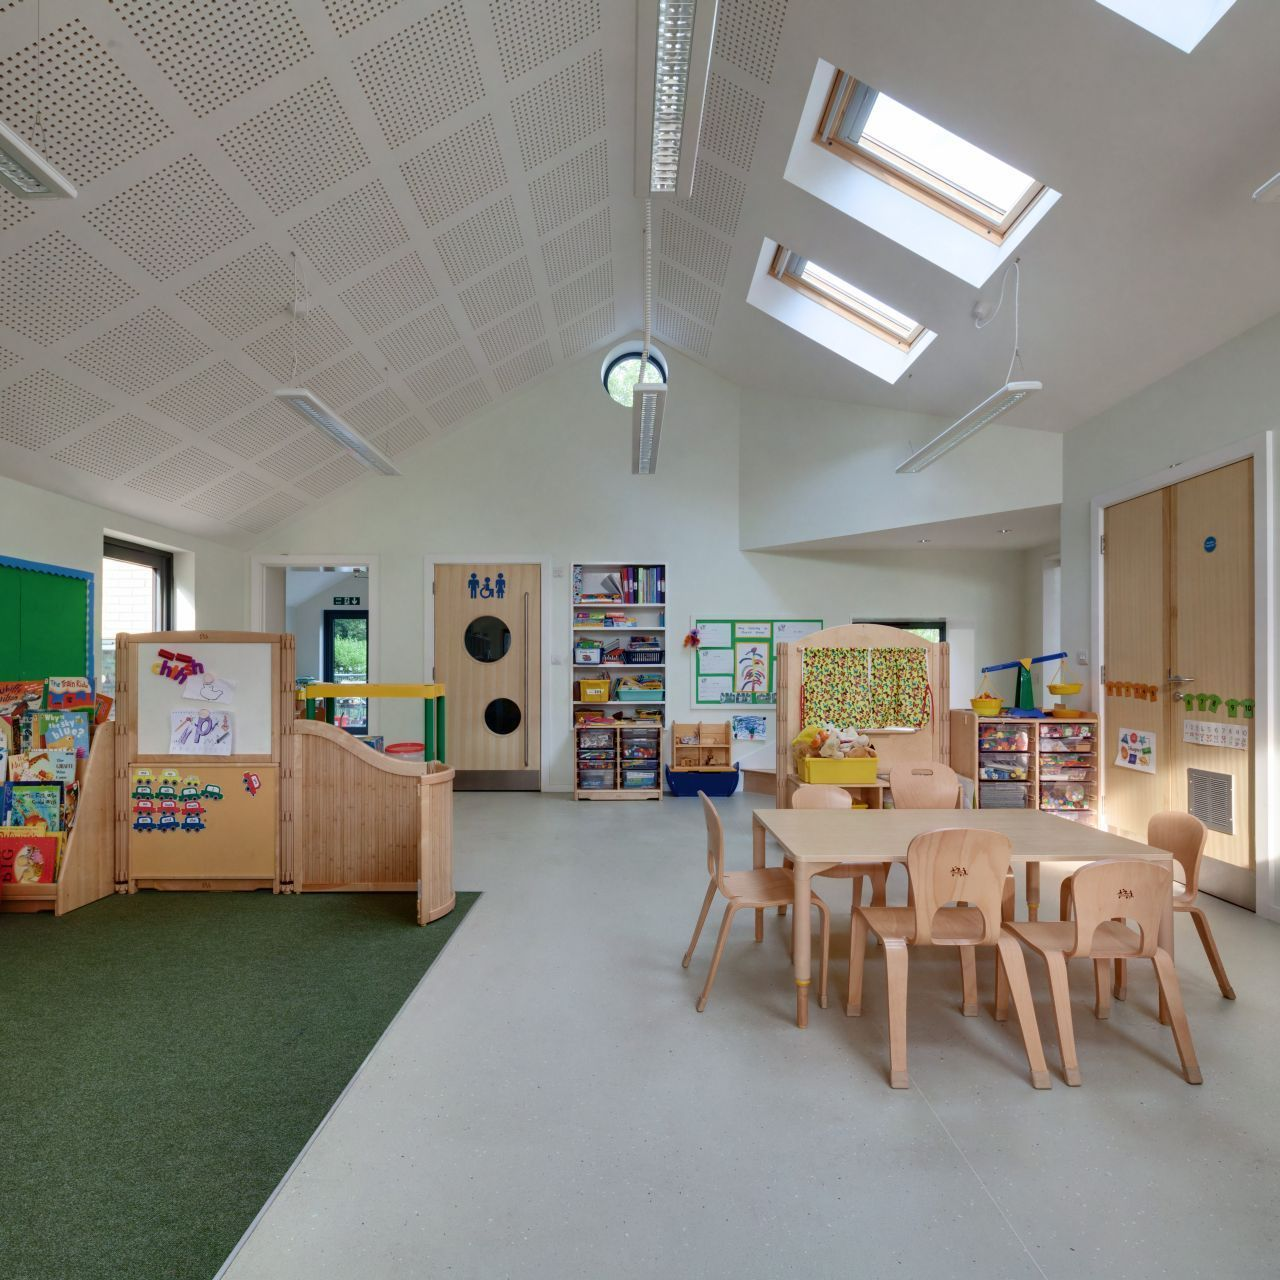 education requirements for interior design - 1000+ images about play school on Pinterest Schools in, Infants ...